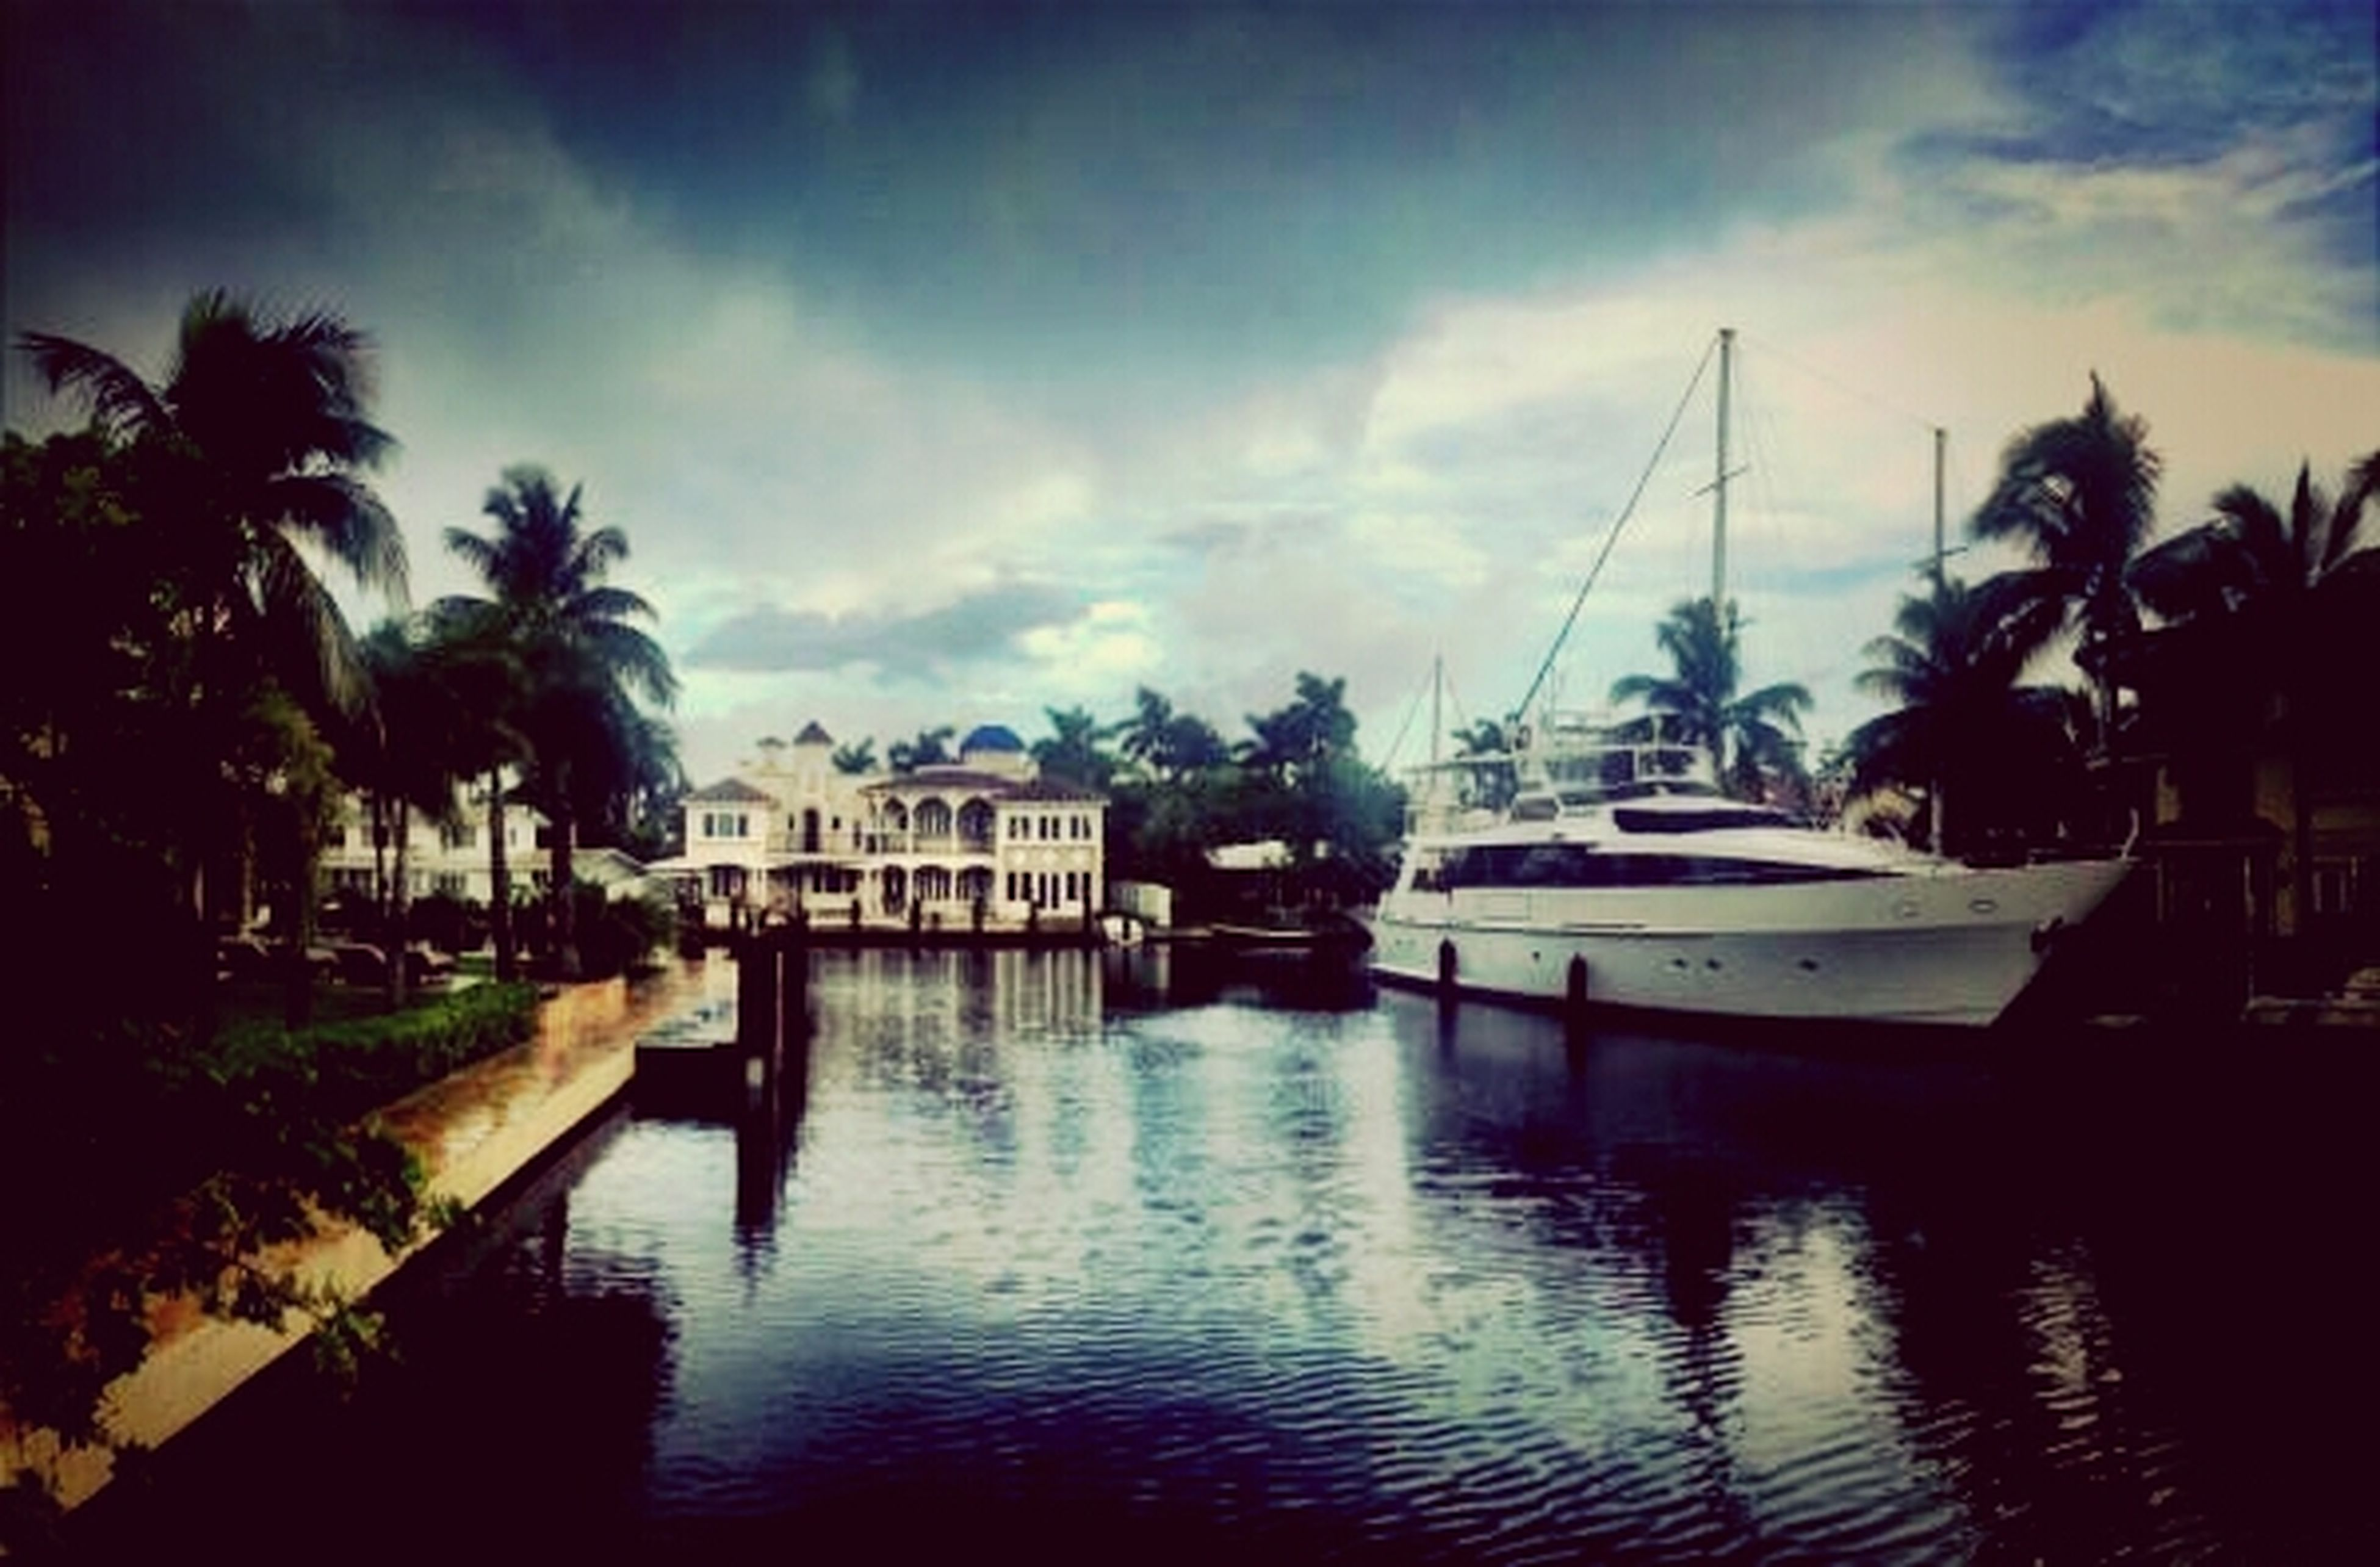 water, sky, waterfront, tree, nautical vessel, cloud - sky, transportation, moored, built structure, reflection, boat, architecture, mode of transport, river, building exterior, palm tree, cloud, cloudy, outdoors, sunset